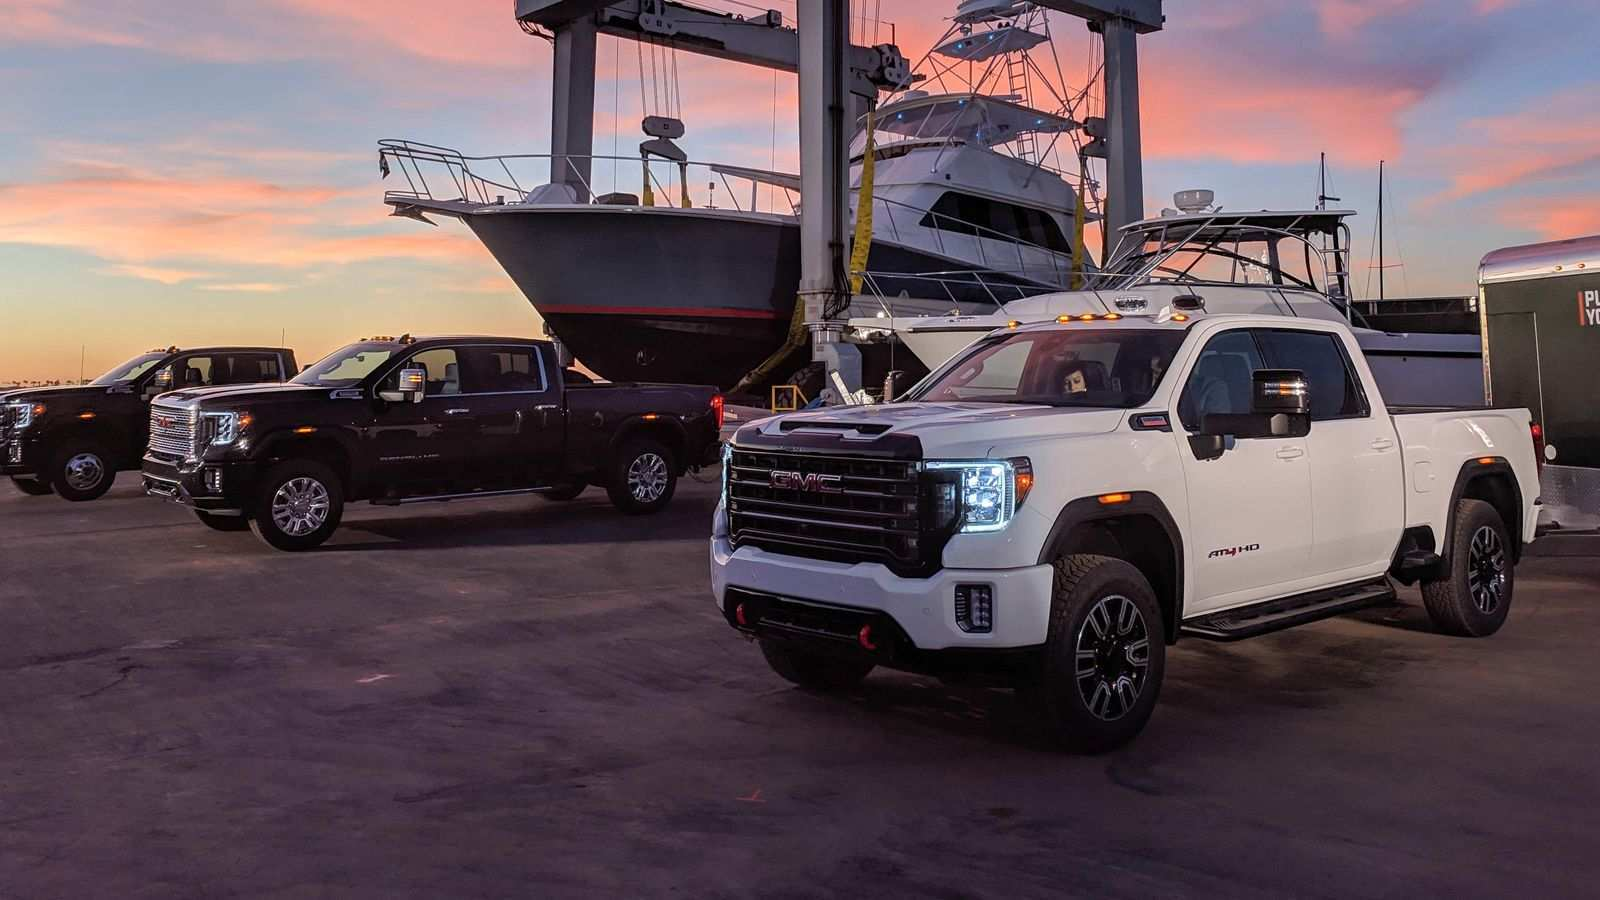 80 New 2020 GMC Sierra Hd At4 Price